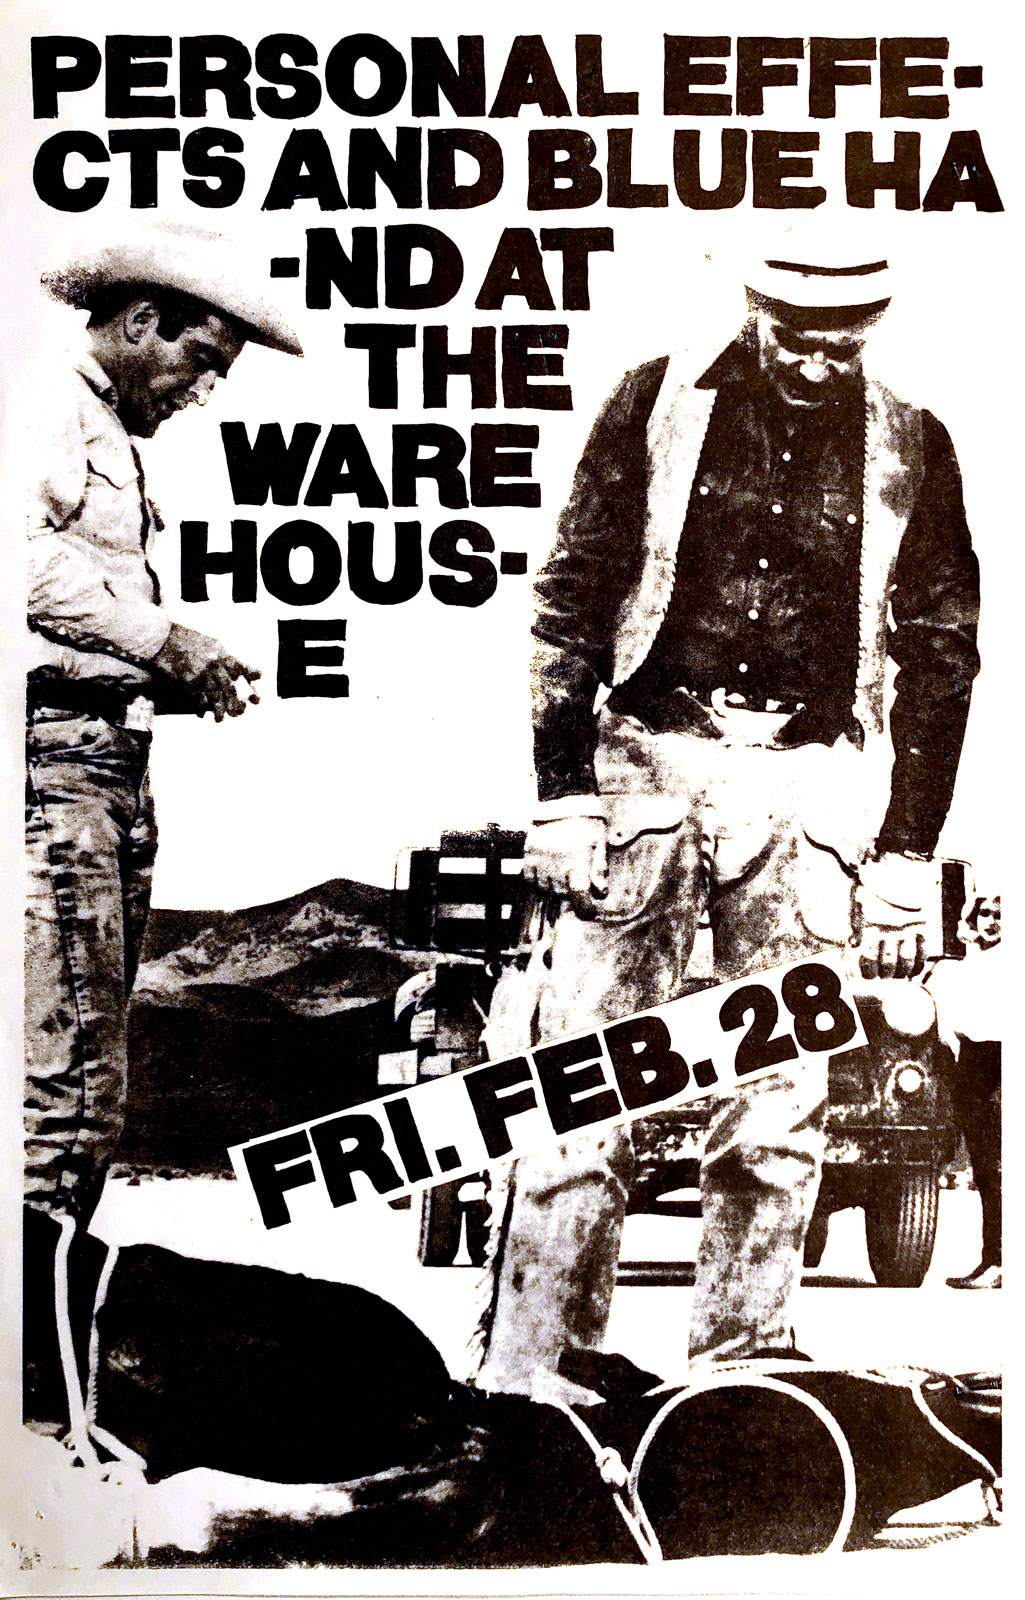 Poster for Personal Effects with Blue Hand at the Warehouse in Rochester, New York on 02.28.1986